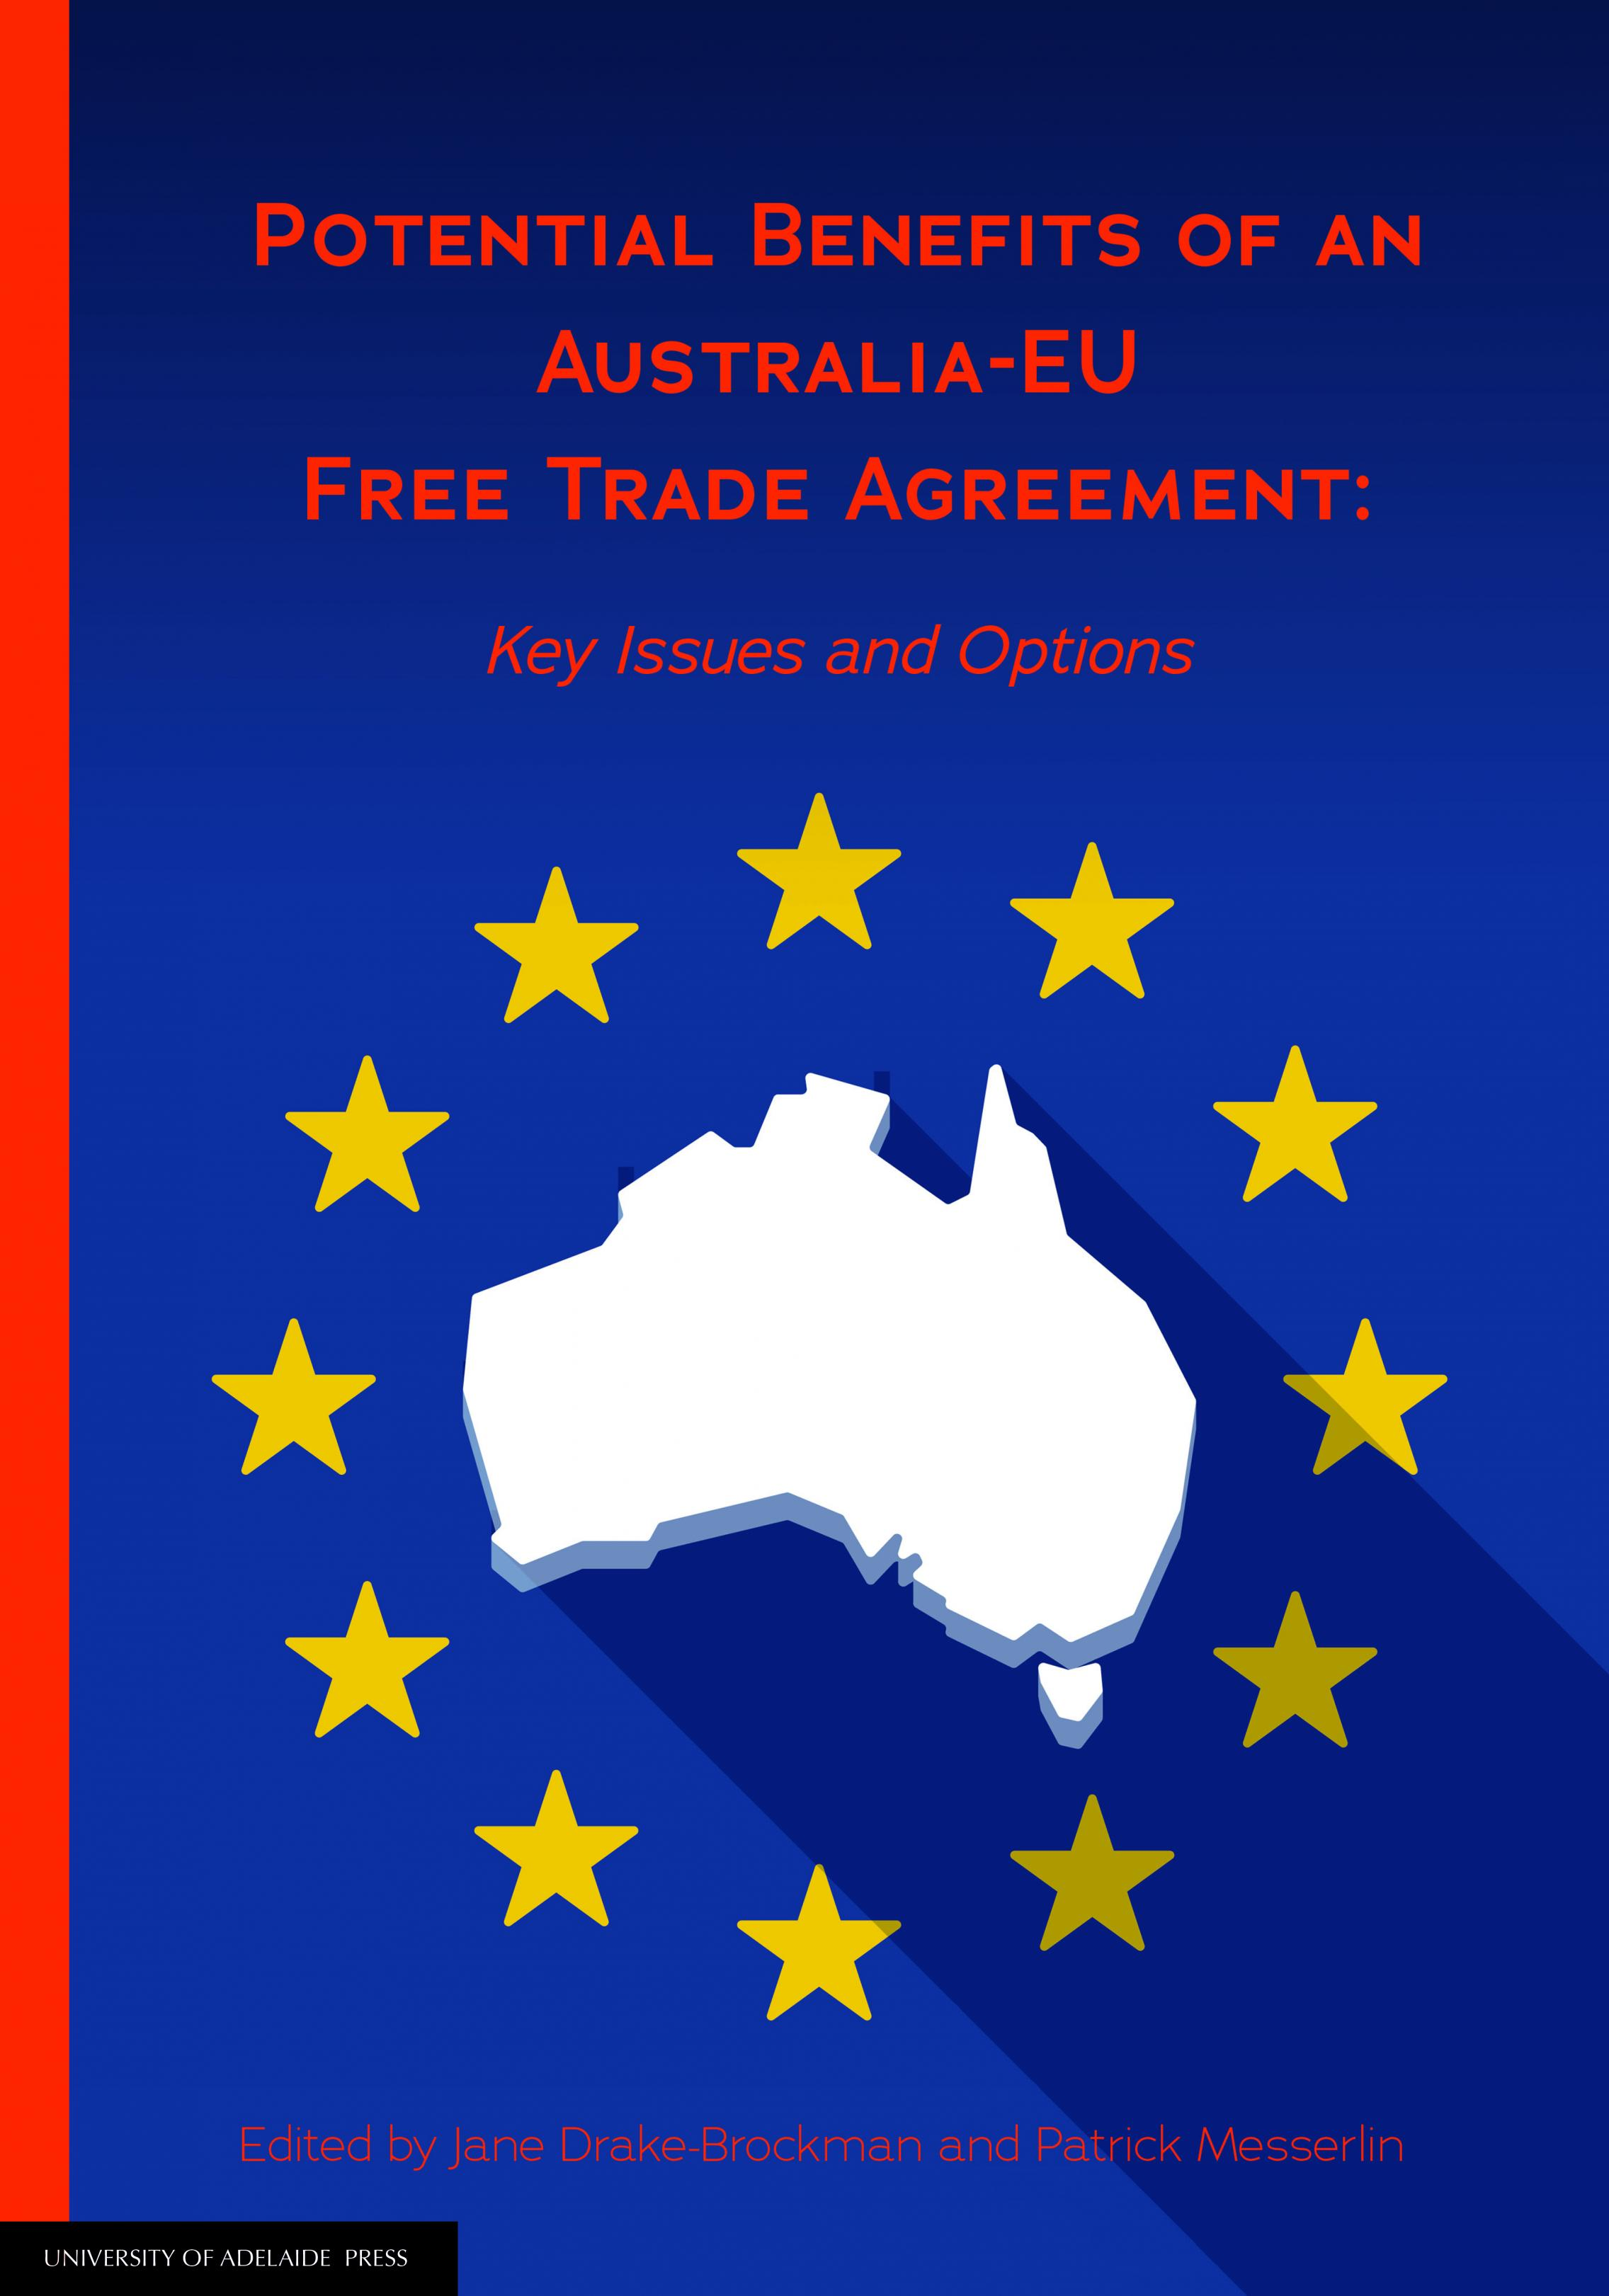 EU trade agreement cover